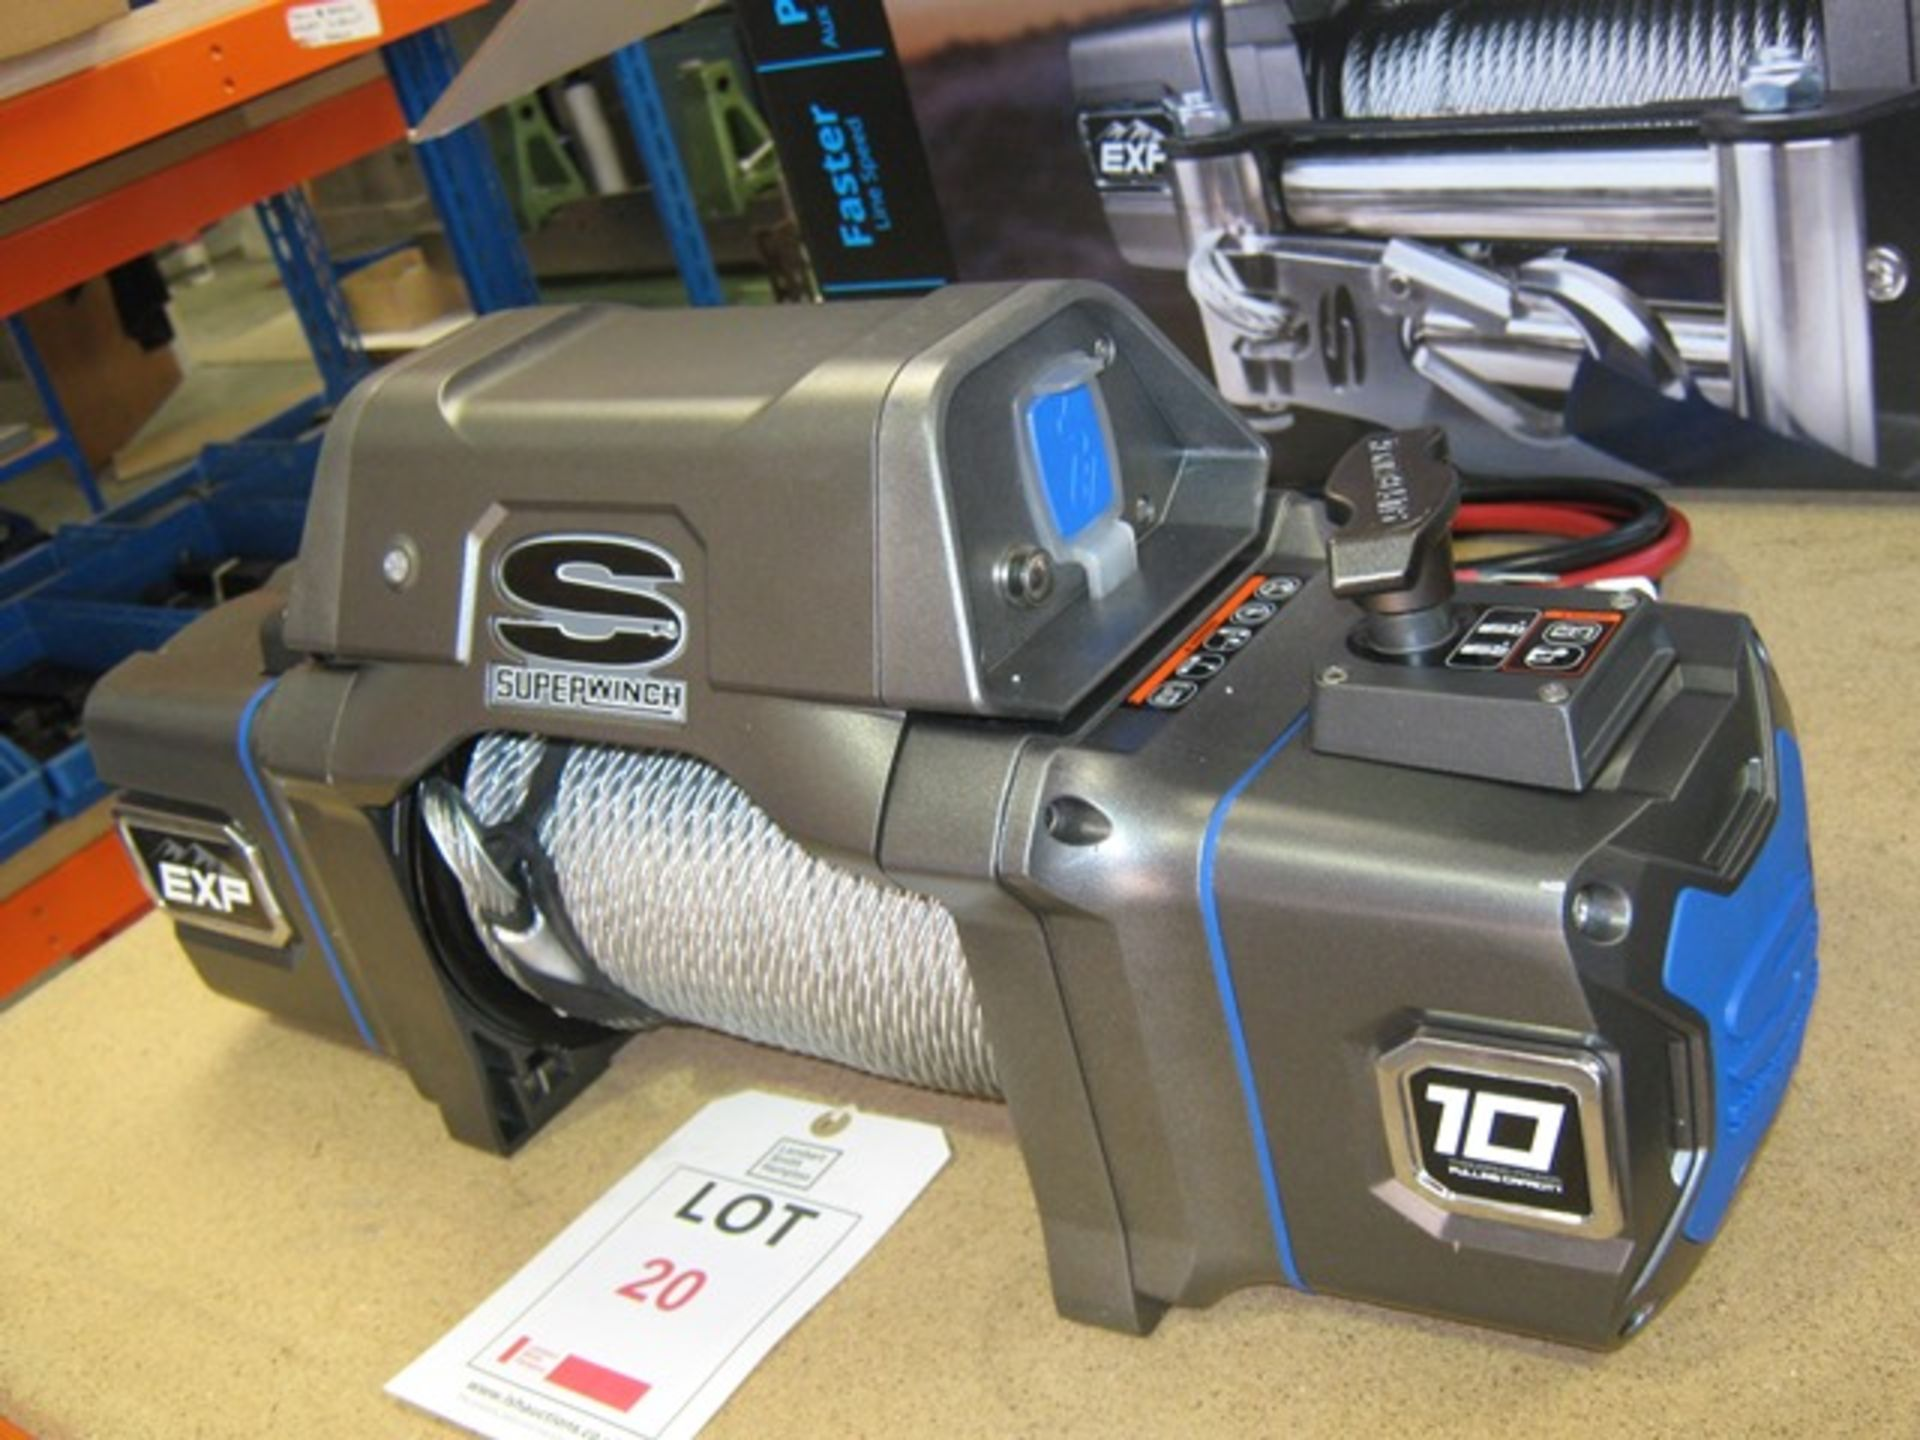 Lot 20 - Superwinch part no. S102737 off road/recovery winch, unused